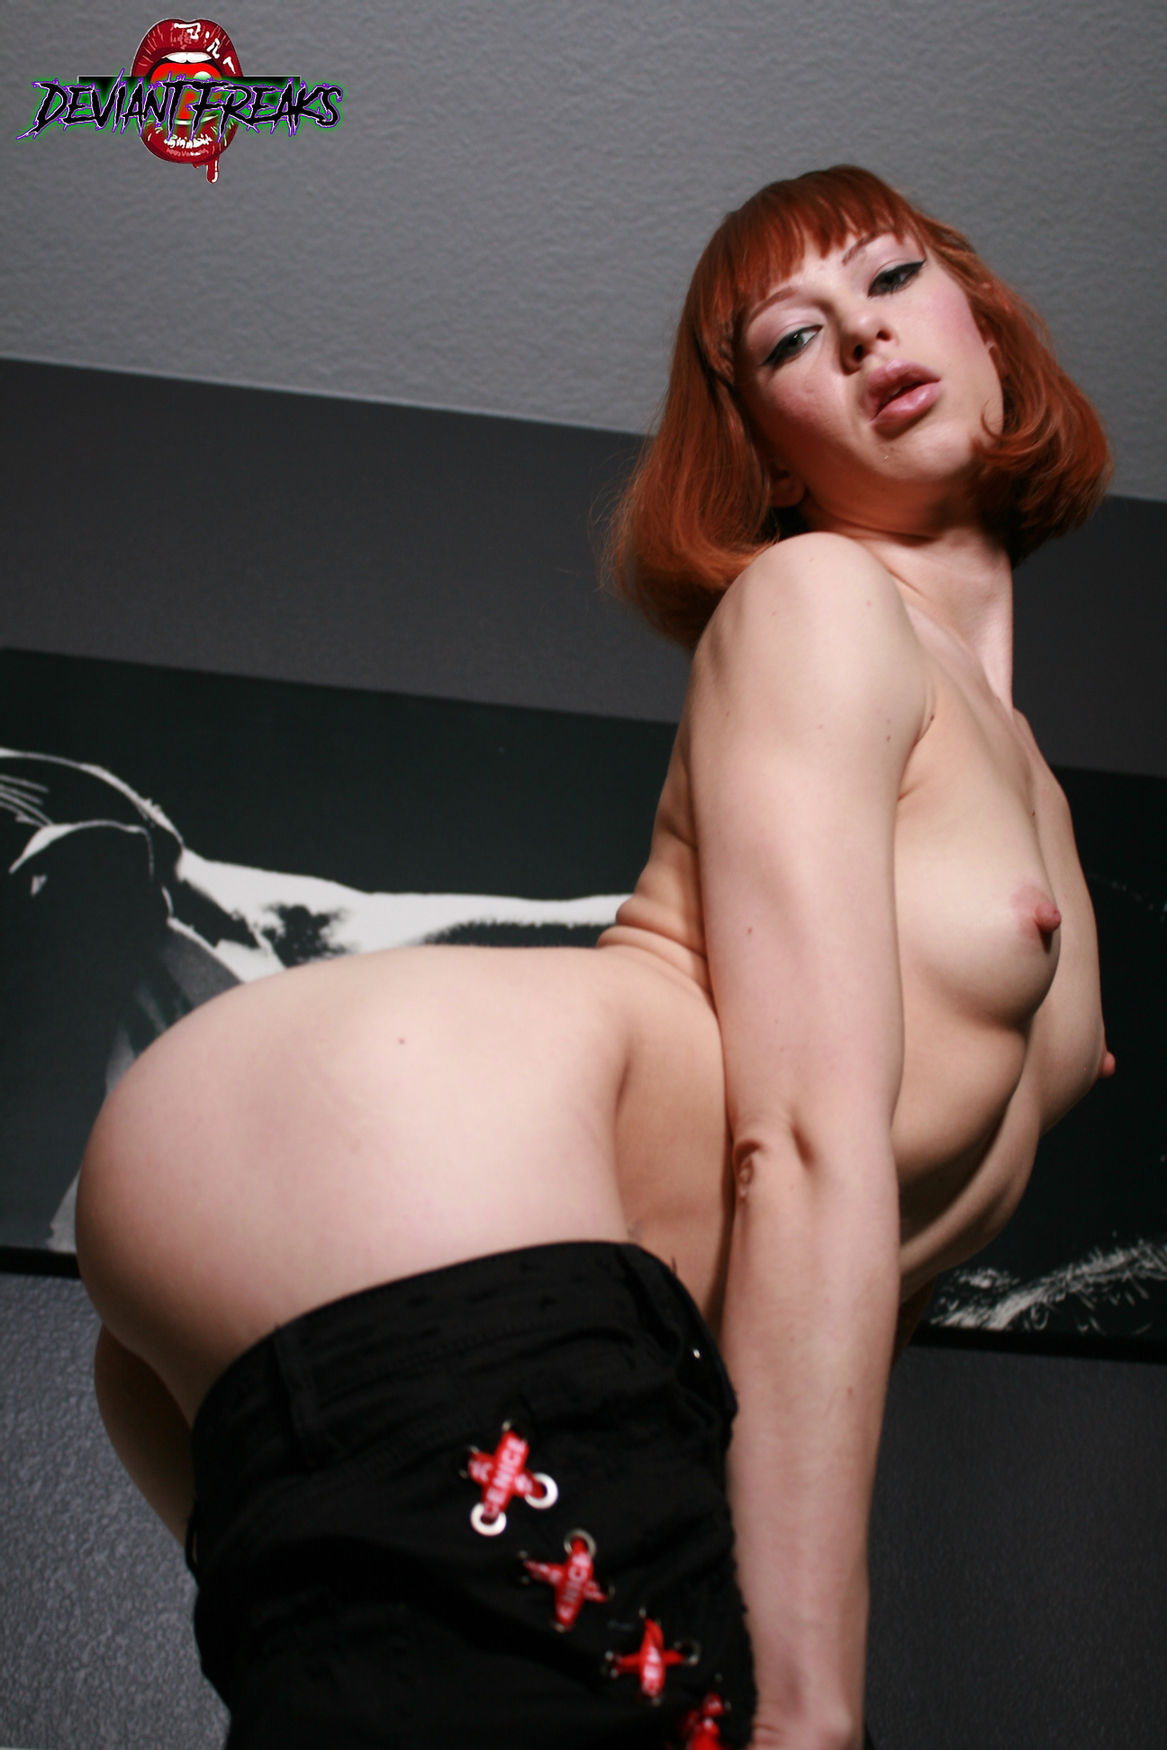 redhead sex actress DeviantFreaks cute butt and thigh boot from the pornstar's free photos